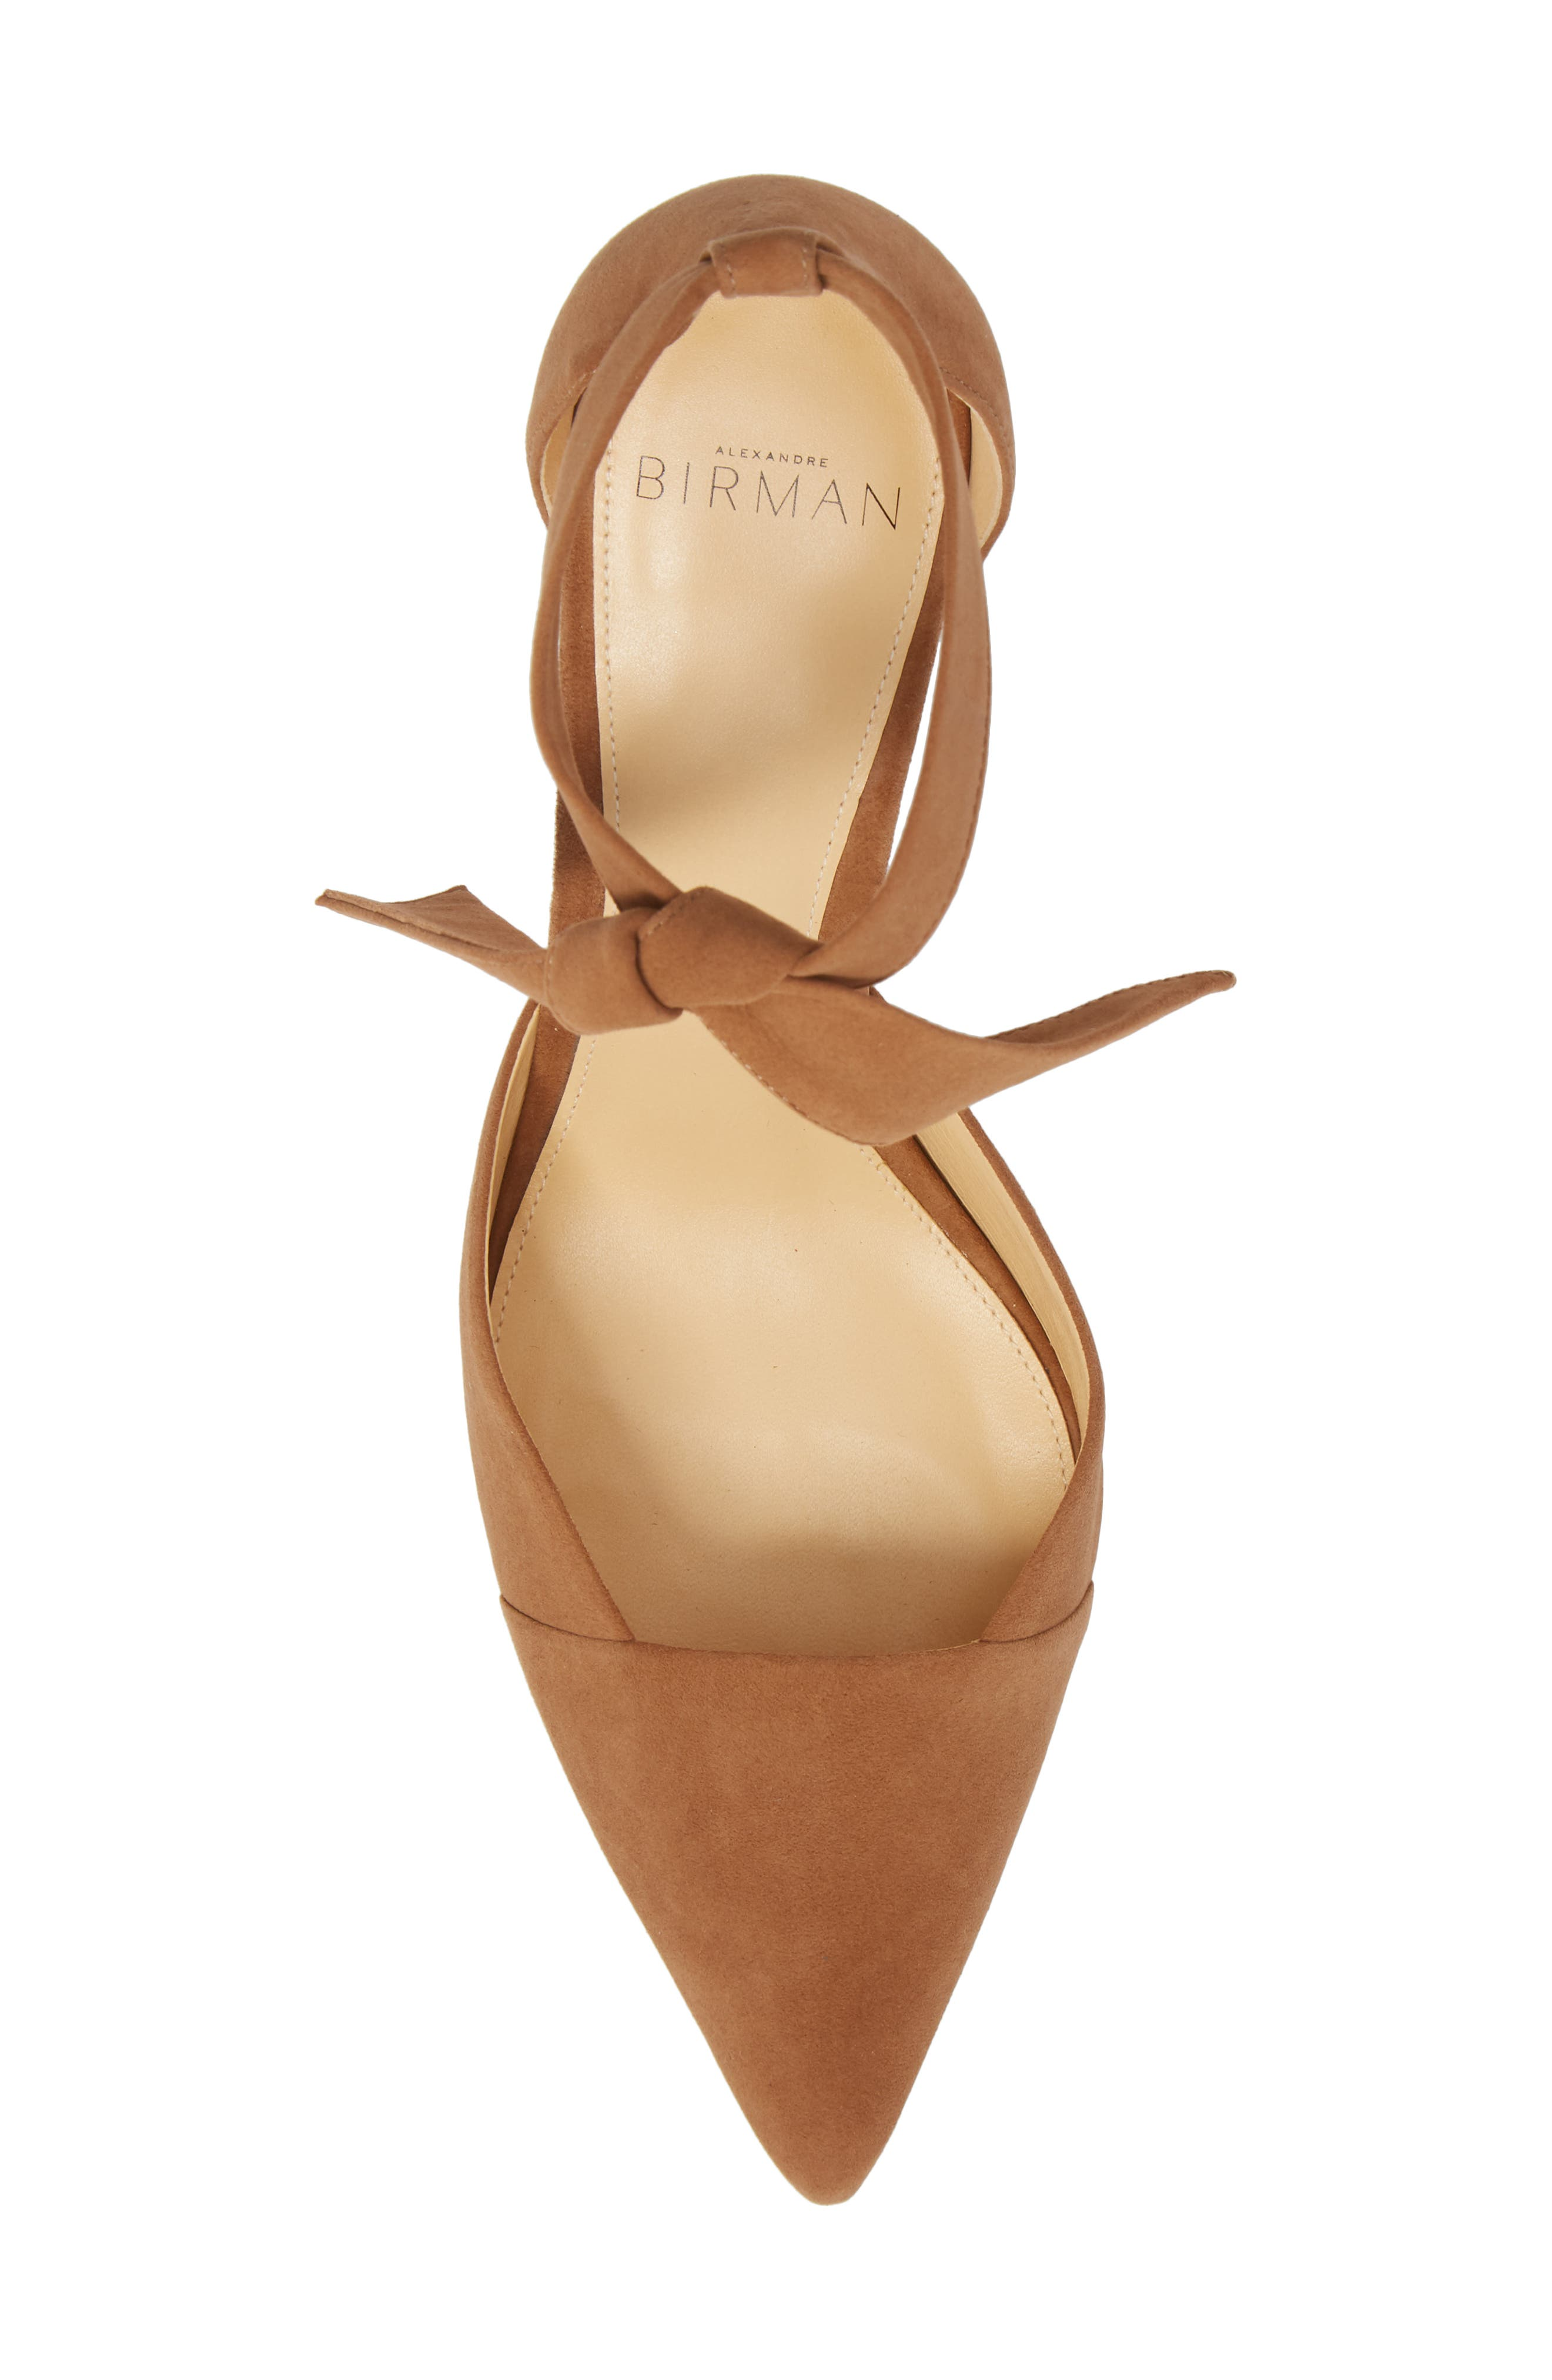 Azalea Tie Strap Pump,                             Alternate thumbnail 5, color,                             LIGHT BEIGE